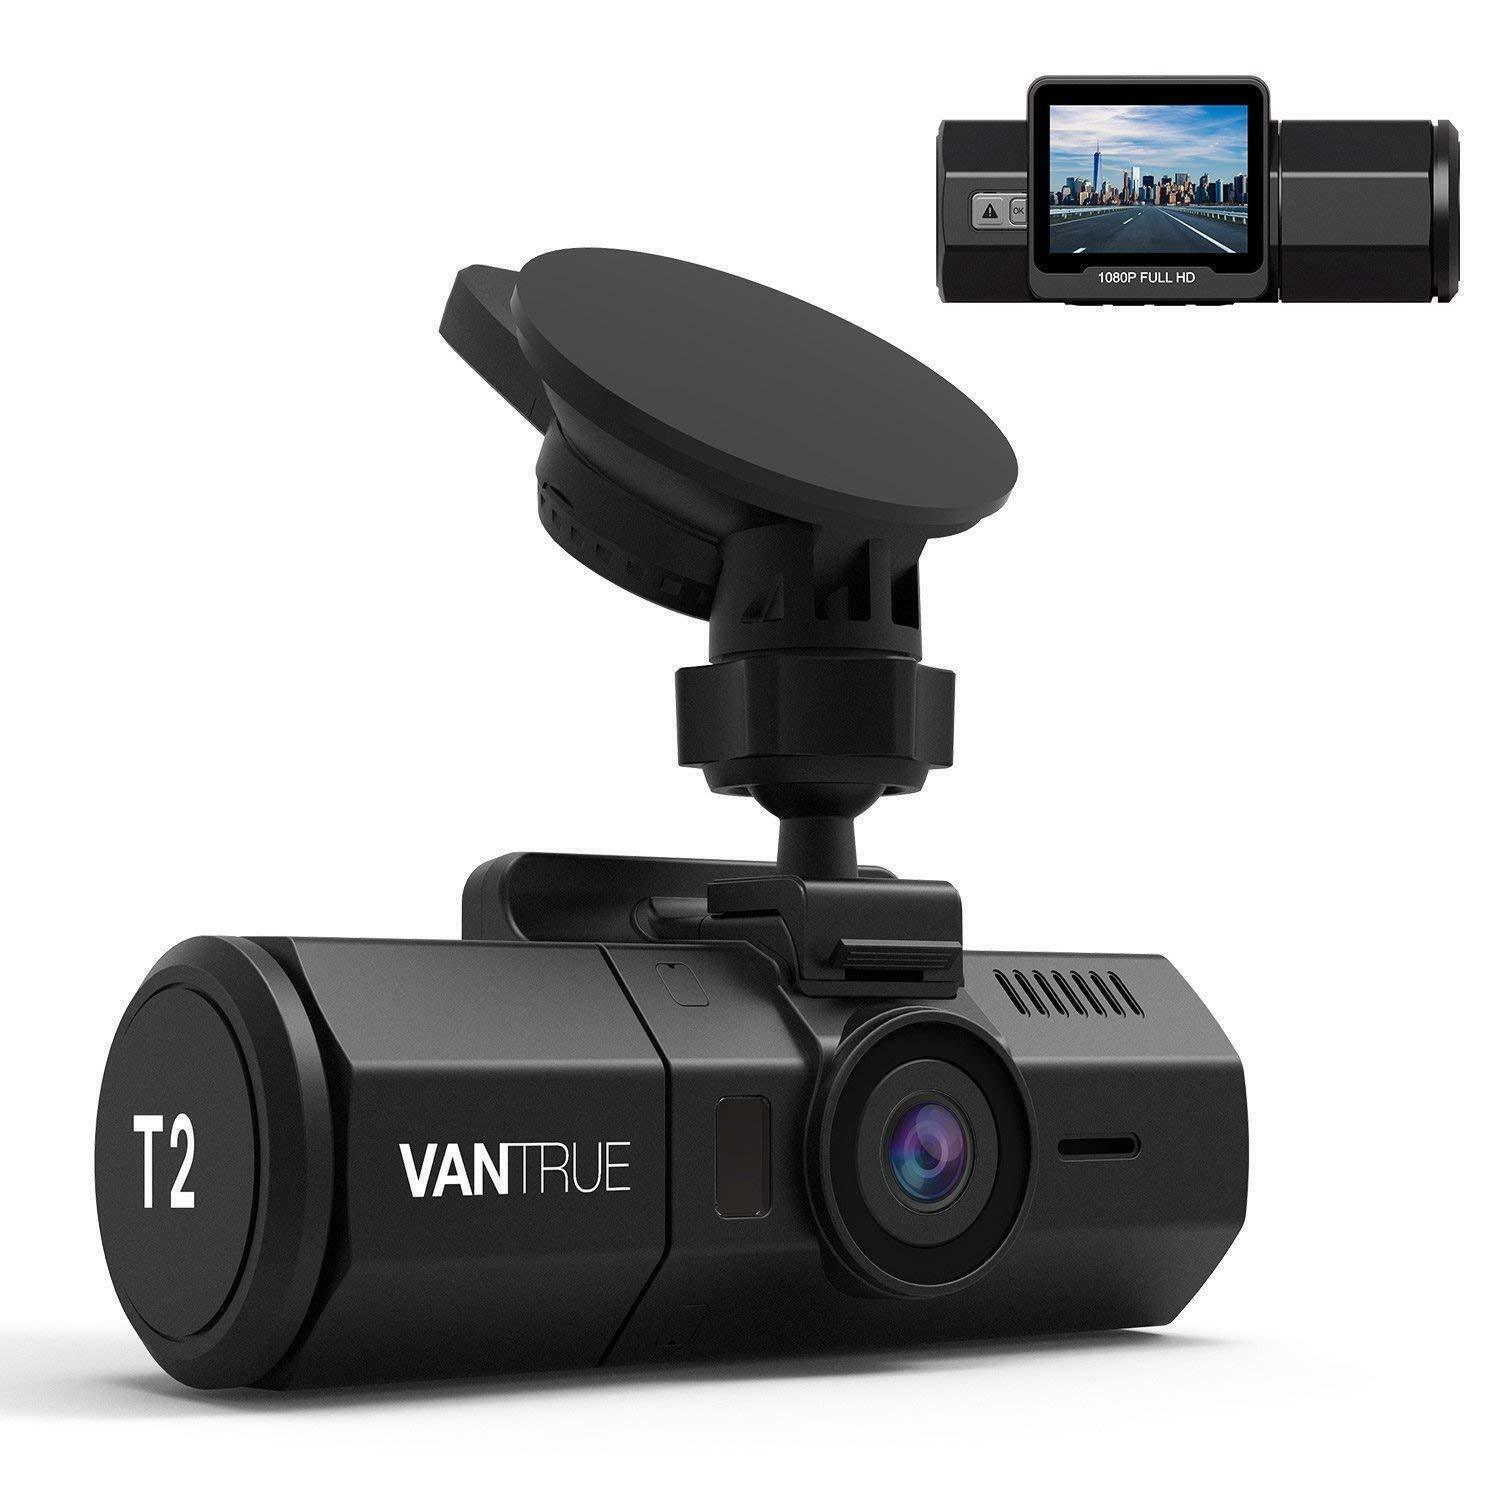 s-l1600 Vantrue T2 24/7 Surveillance Super Capacitor Dash Cam 1080P, Night Vision, DVR